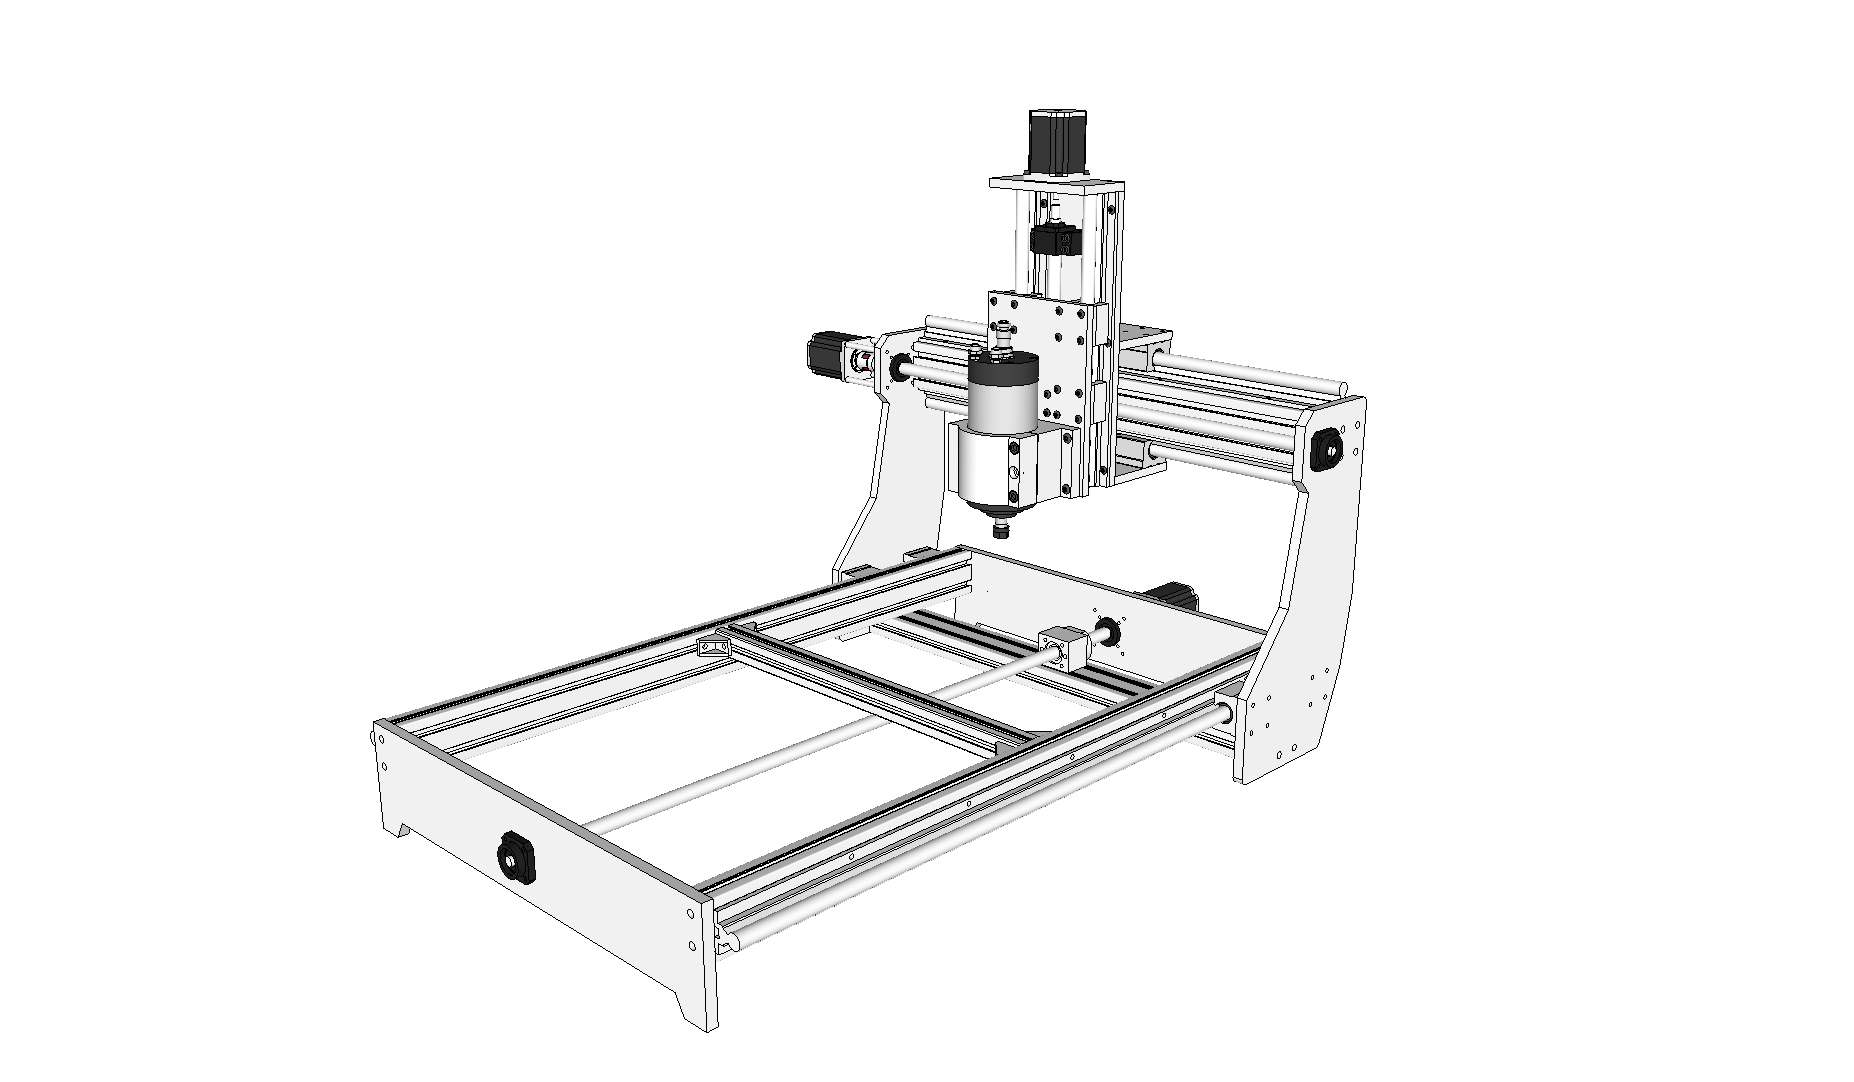 New Machine Build iD2CNC V.3.0.1 New machine build log